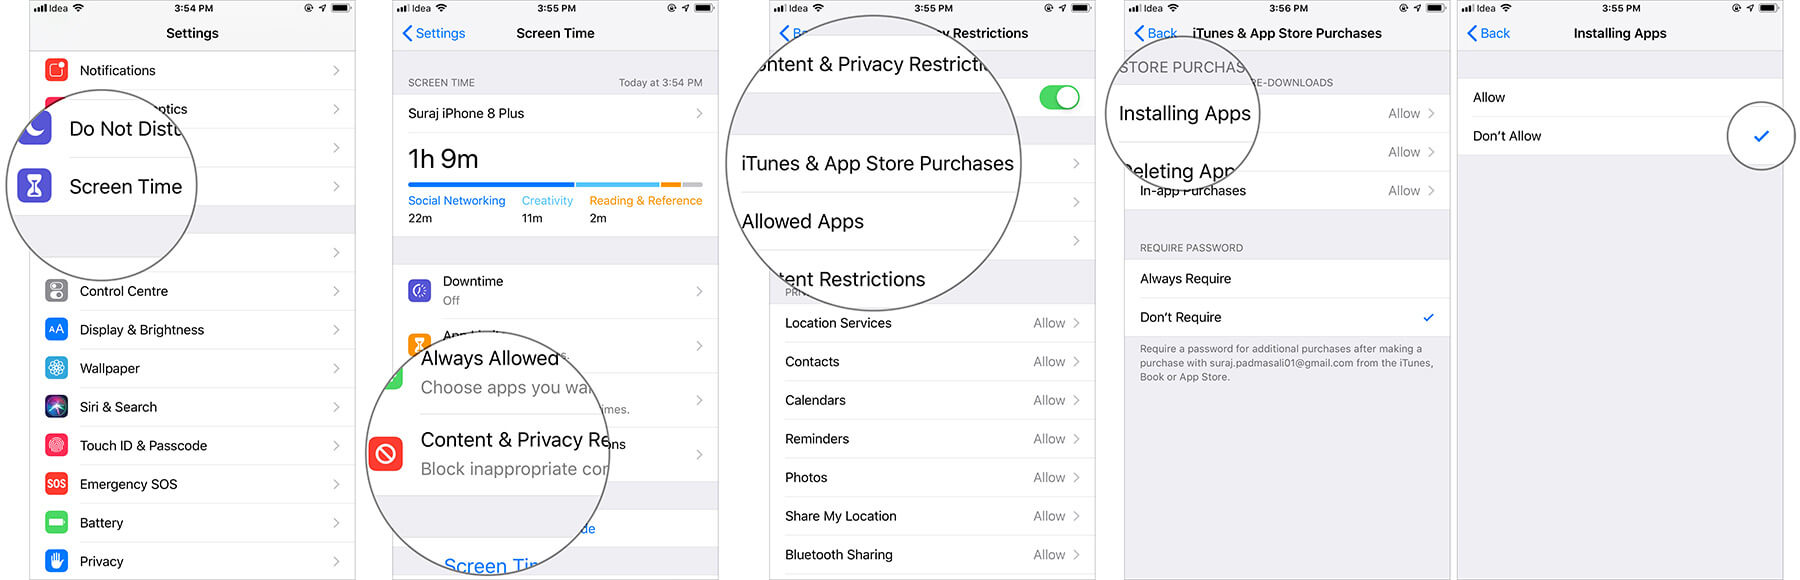 Turn Off Installation of Apps on iPhone and iPad